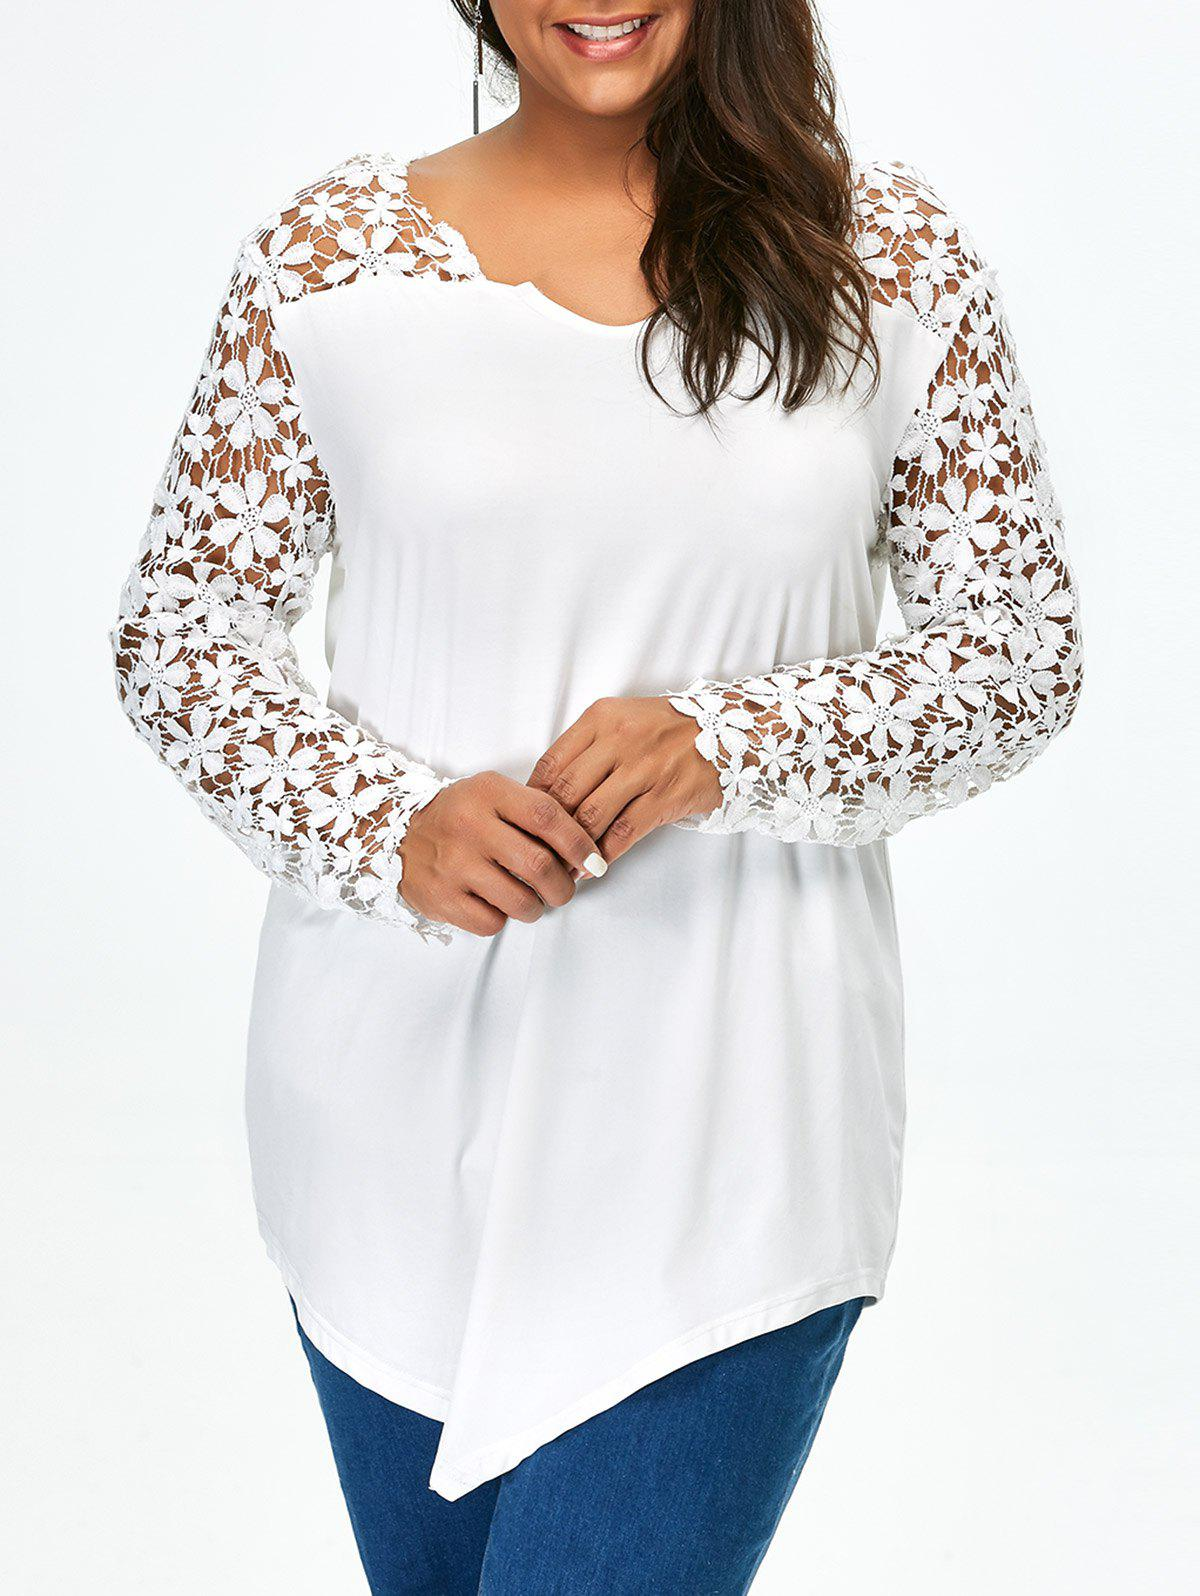 Lace Panel Plus Size Long Sleeve Tunic T Shirt floral lace panel tunic t shirt